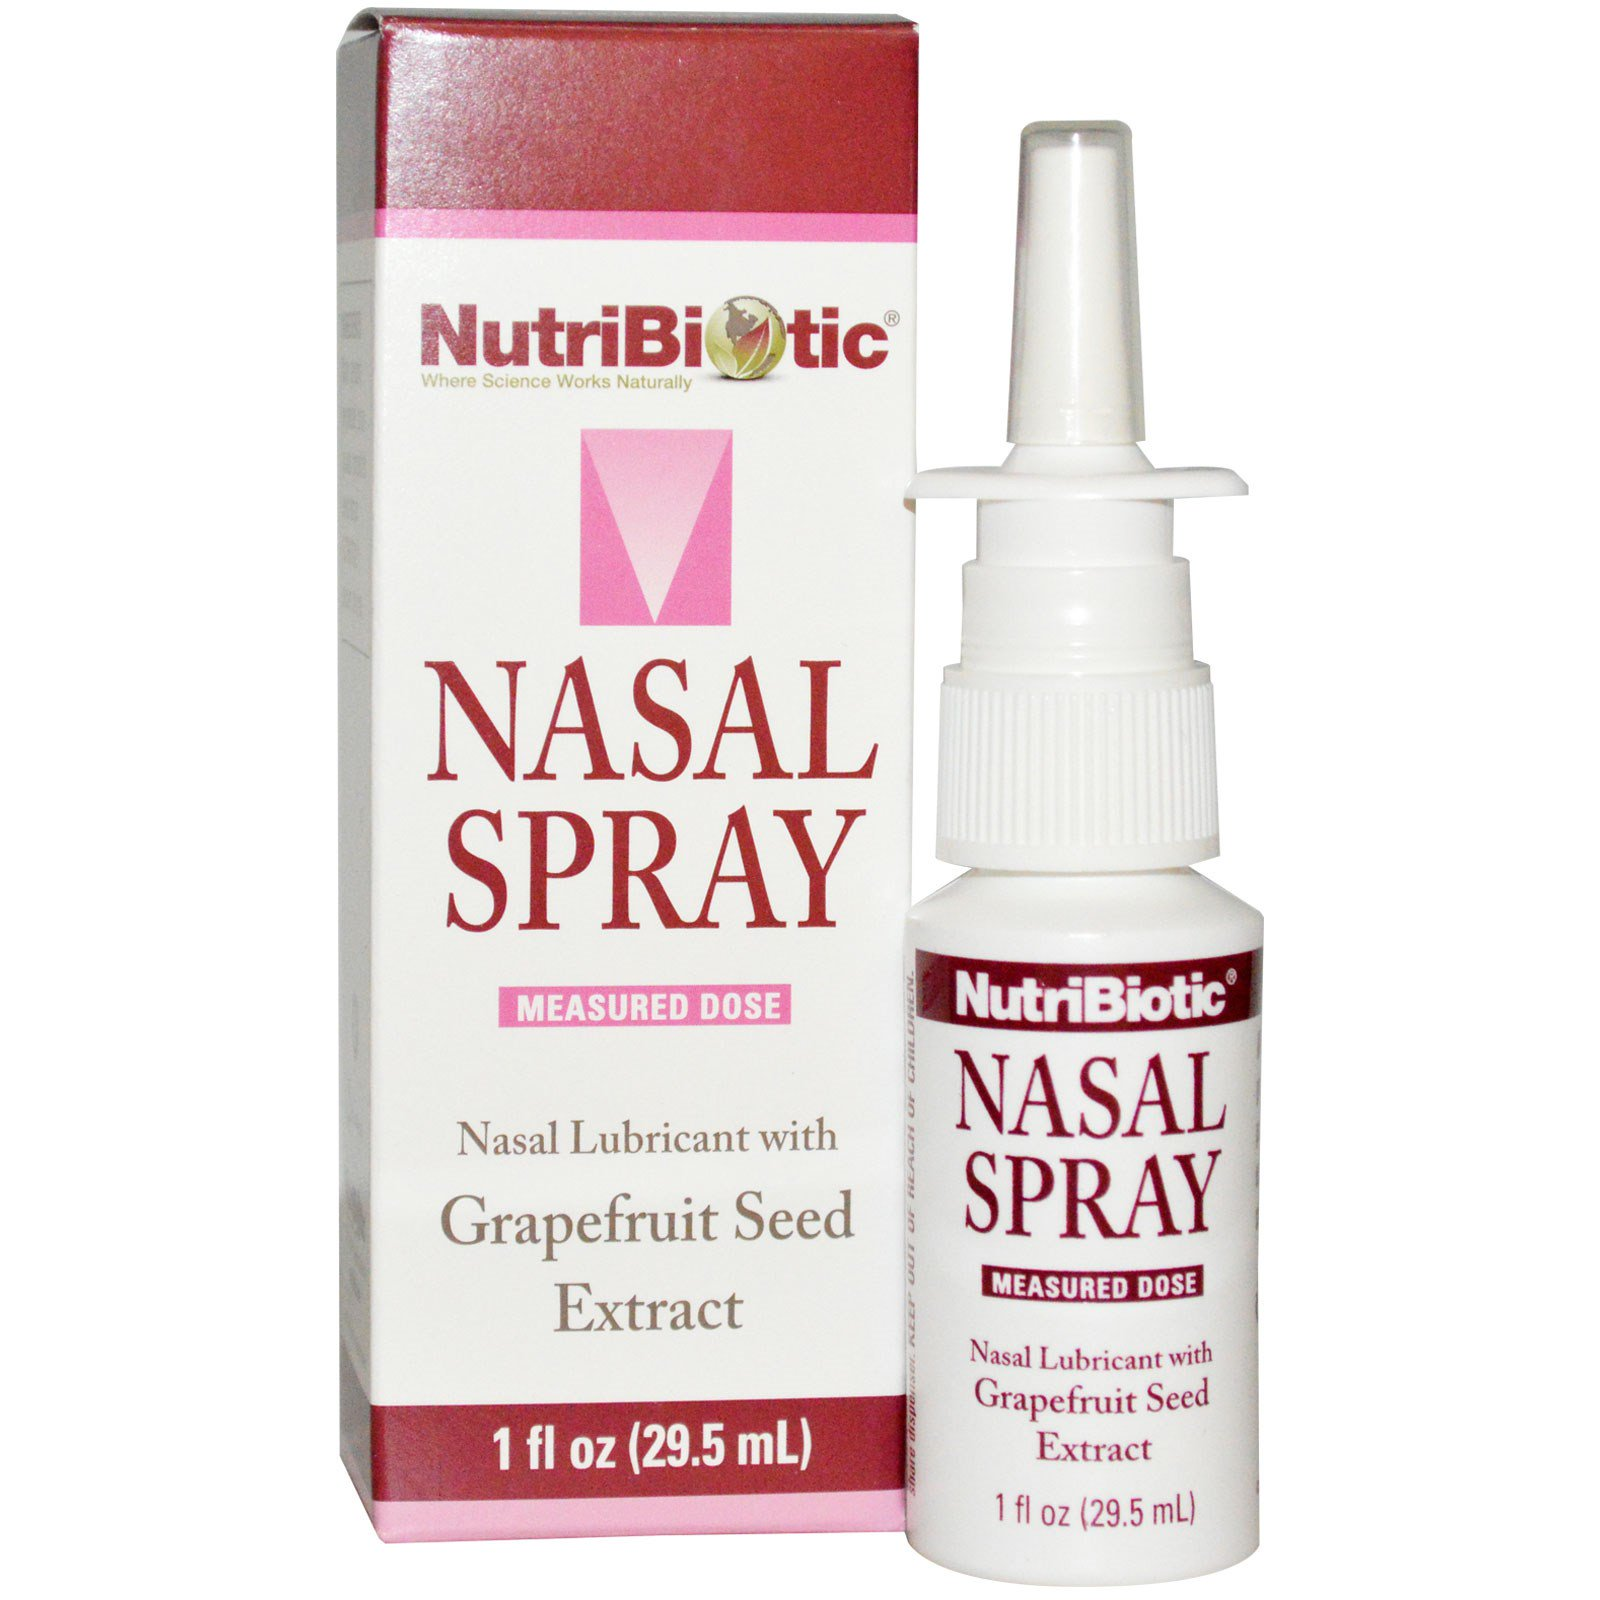 NutriBiotic Nasal Spray with Grapefruit Seed Extract 1 fl oz